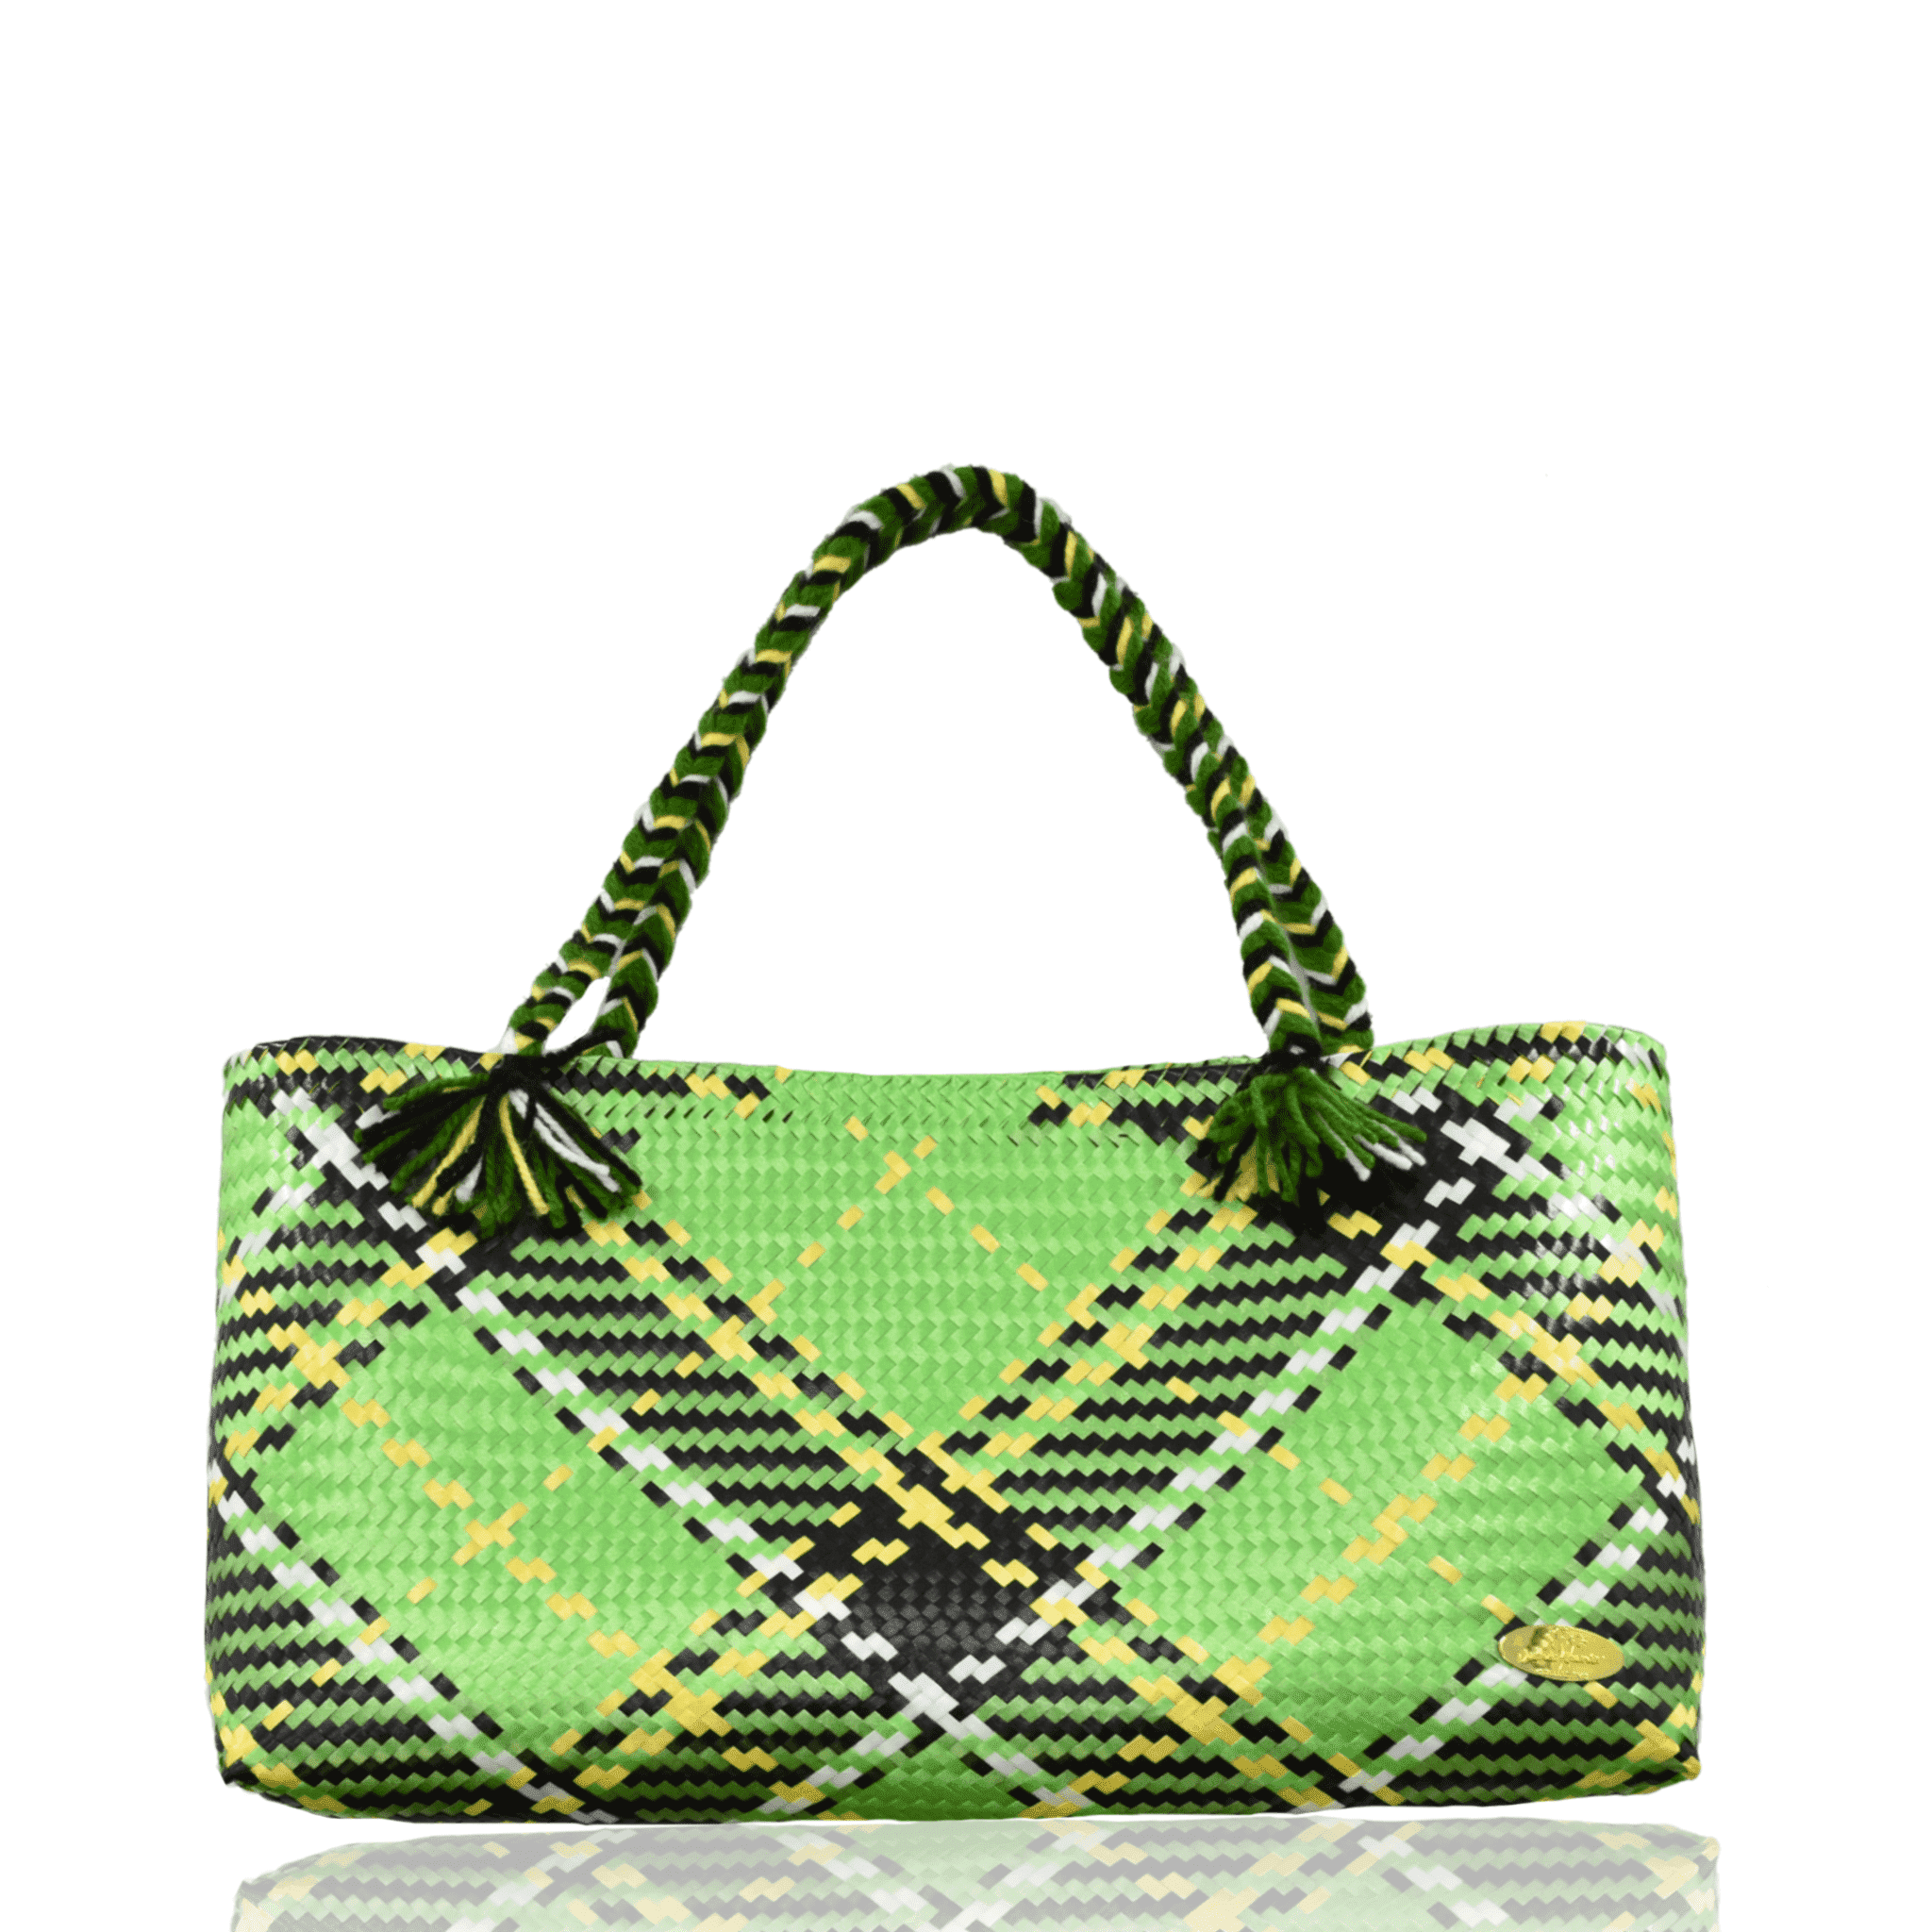 Shop the Plaid Nicky Bag Collection